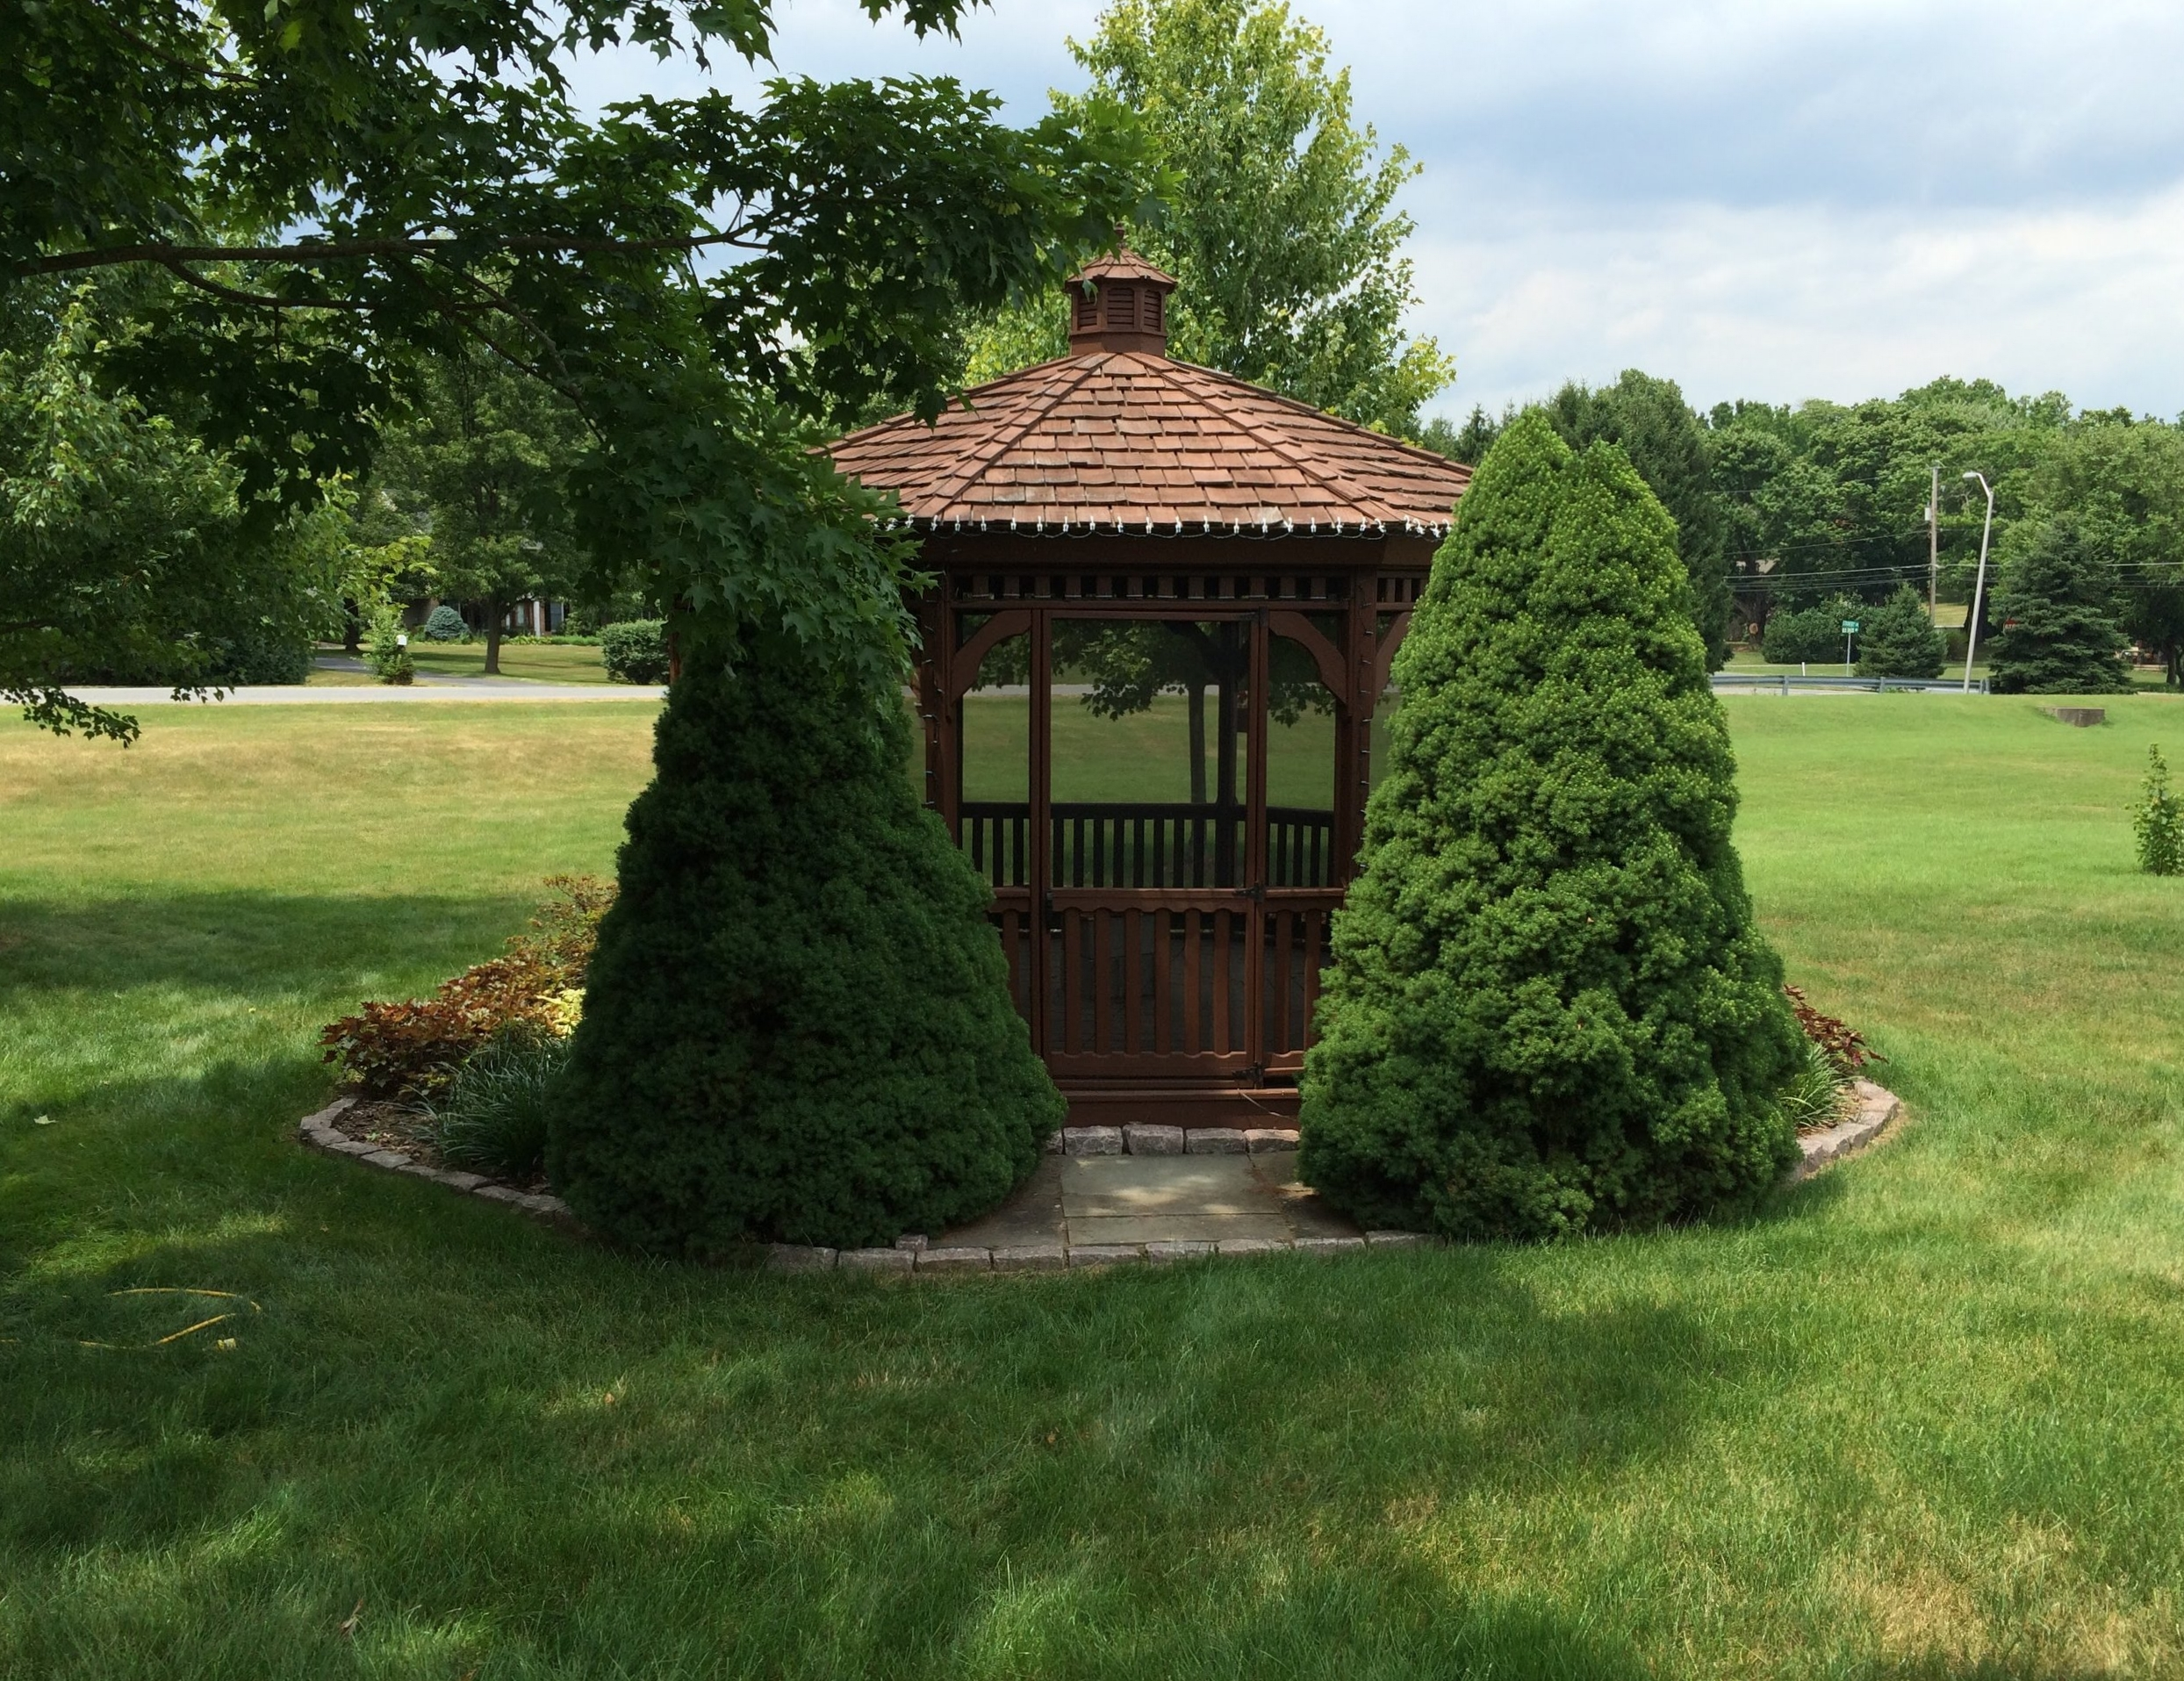 Renue Glass and Screen Repair Cedar Garden Gazebo